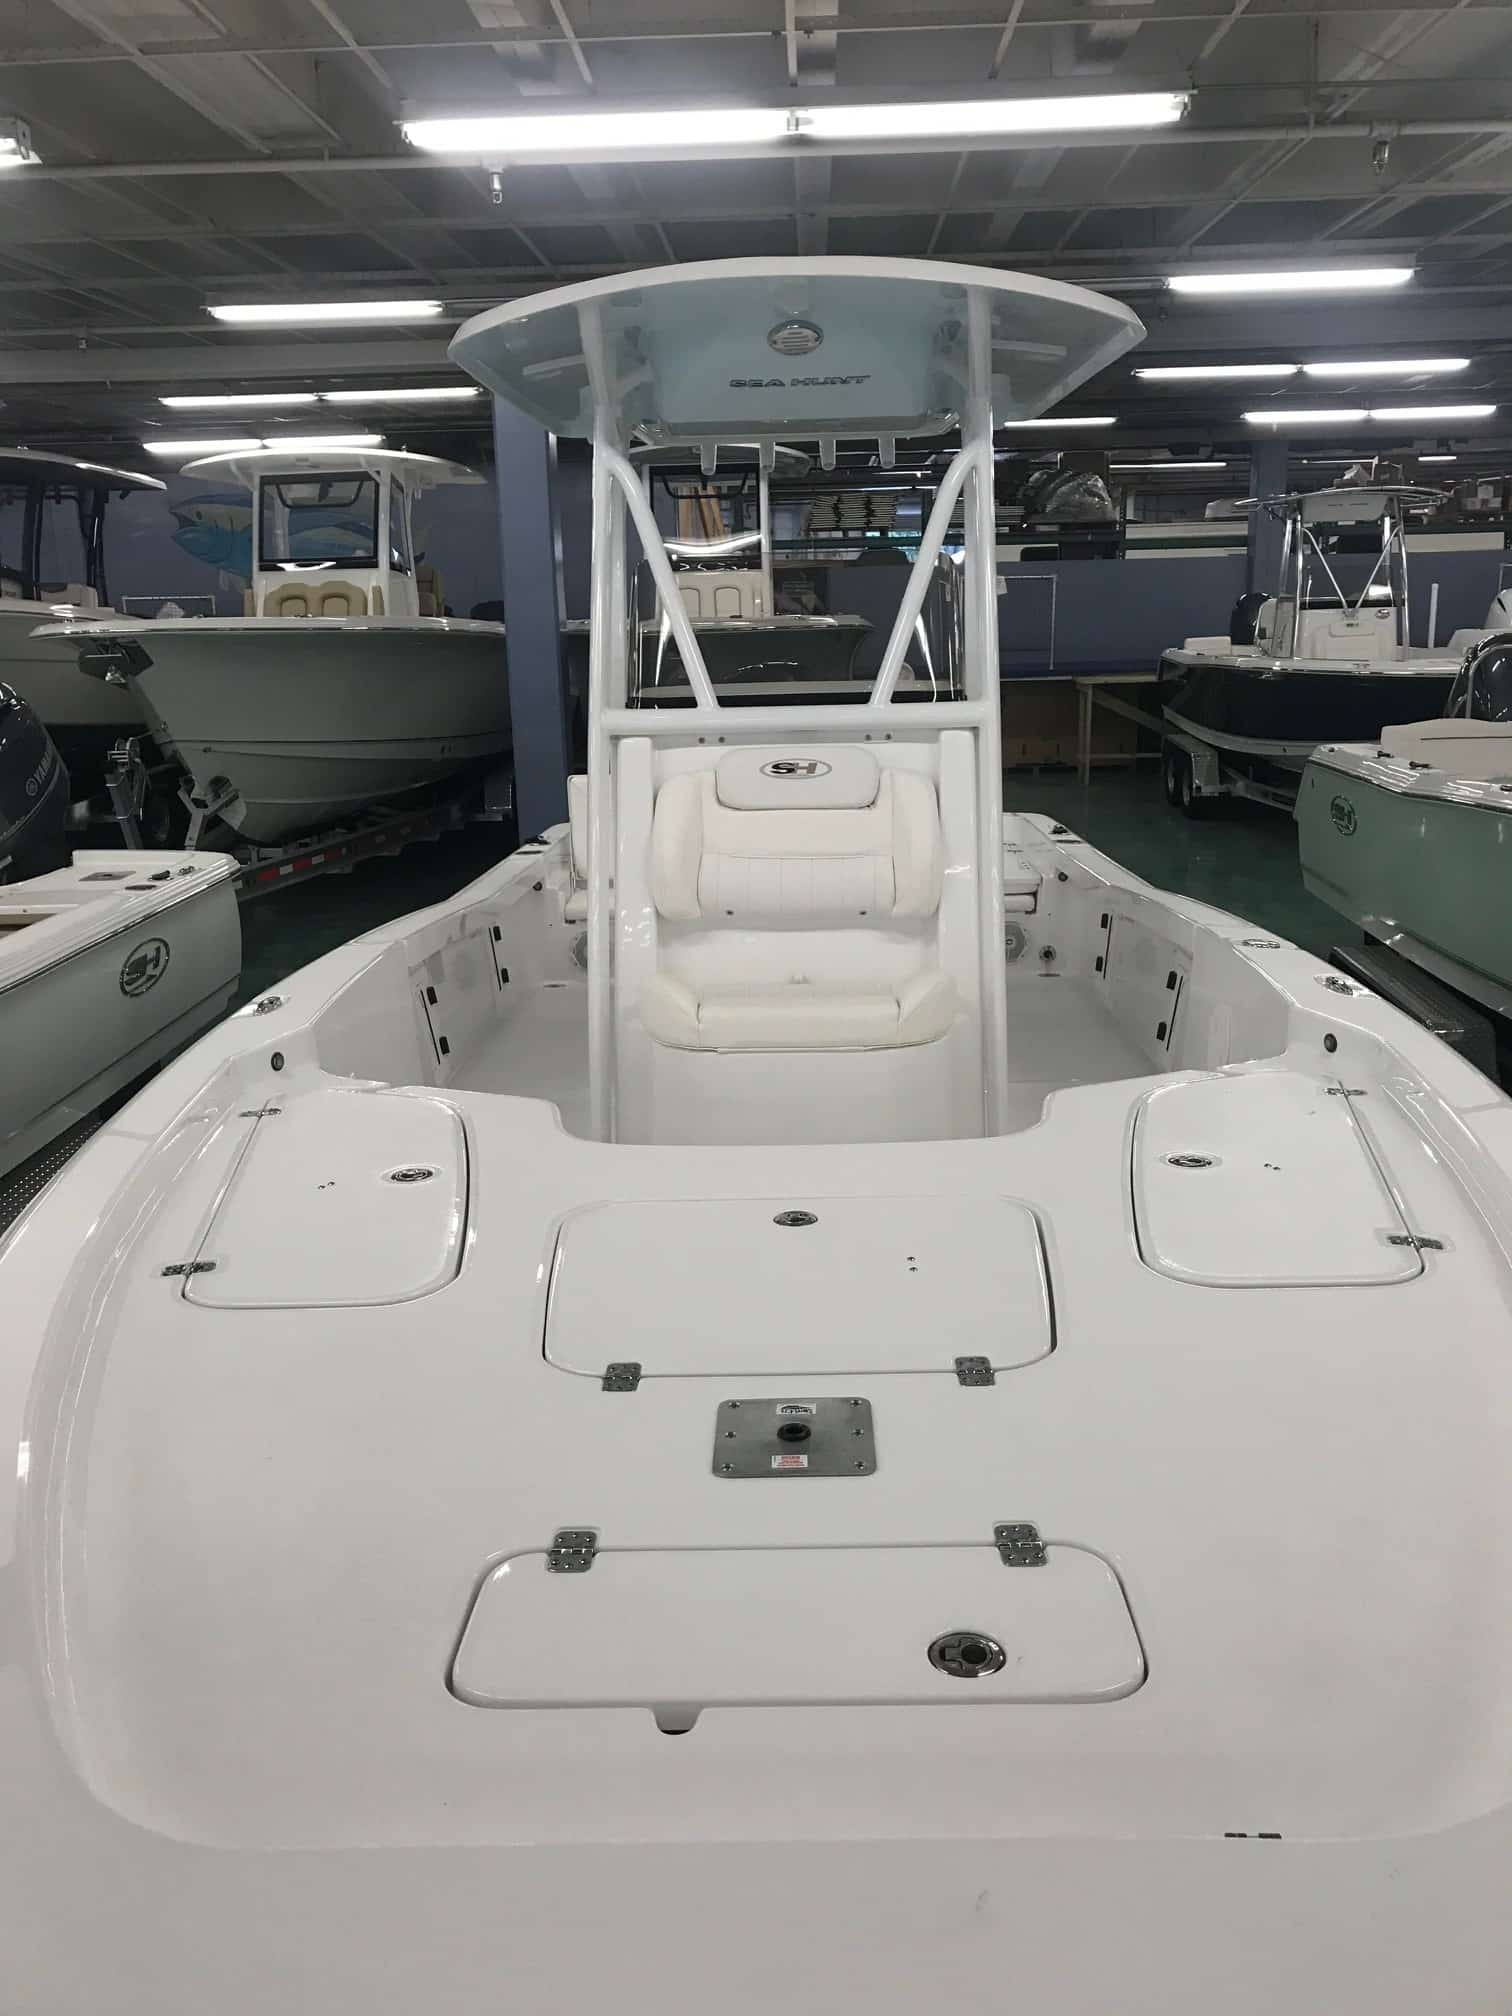 New  2017 25' Sea Hunt Bx Fish Boat in Metairie, Louisiana